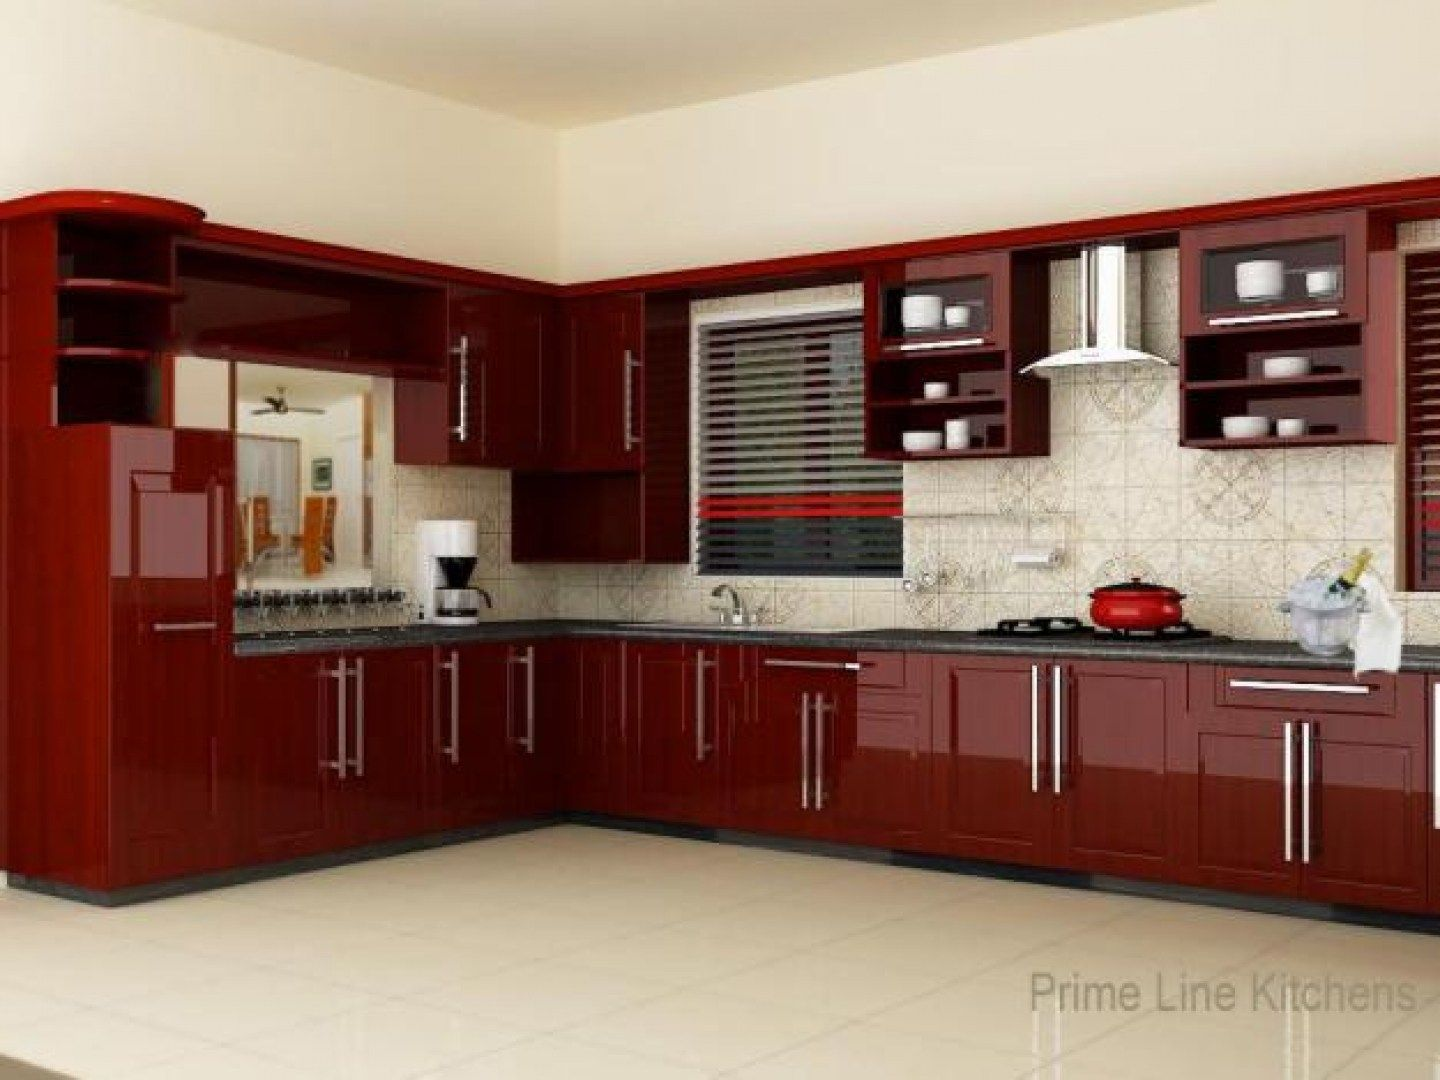 Kitchen design ideas kitchen woodwork designs hyderabad for Kitchen cabinets ideas pictures